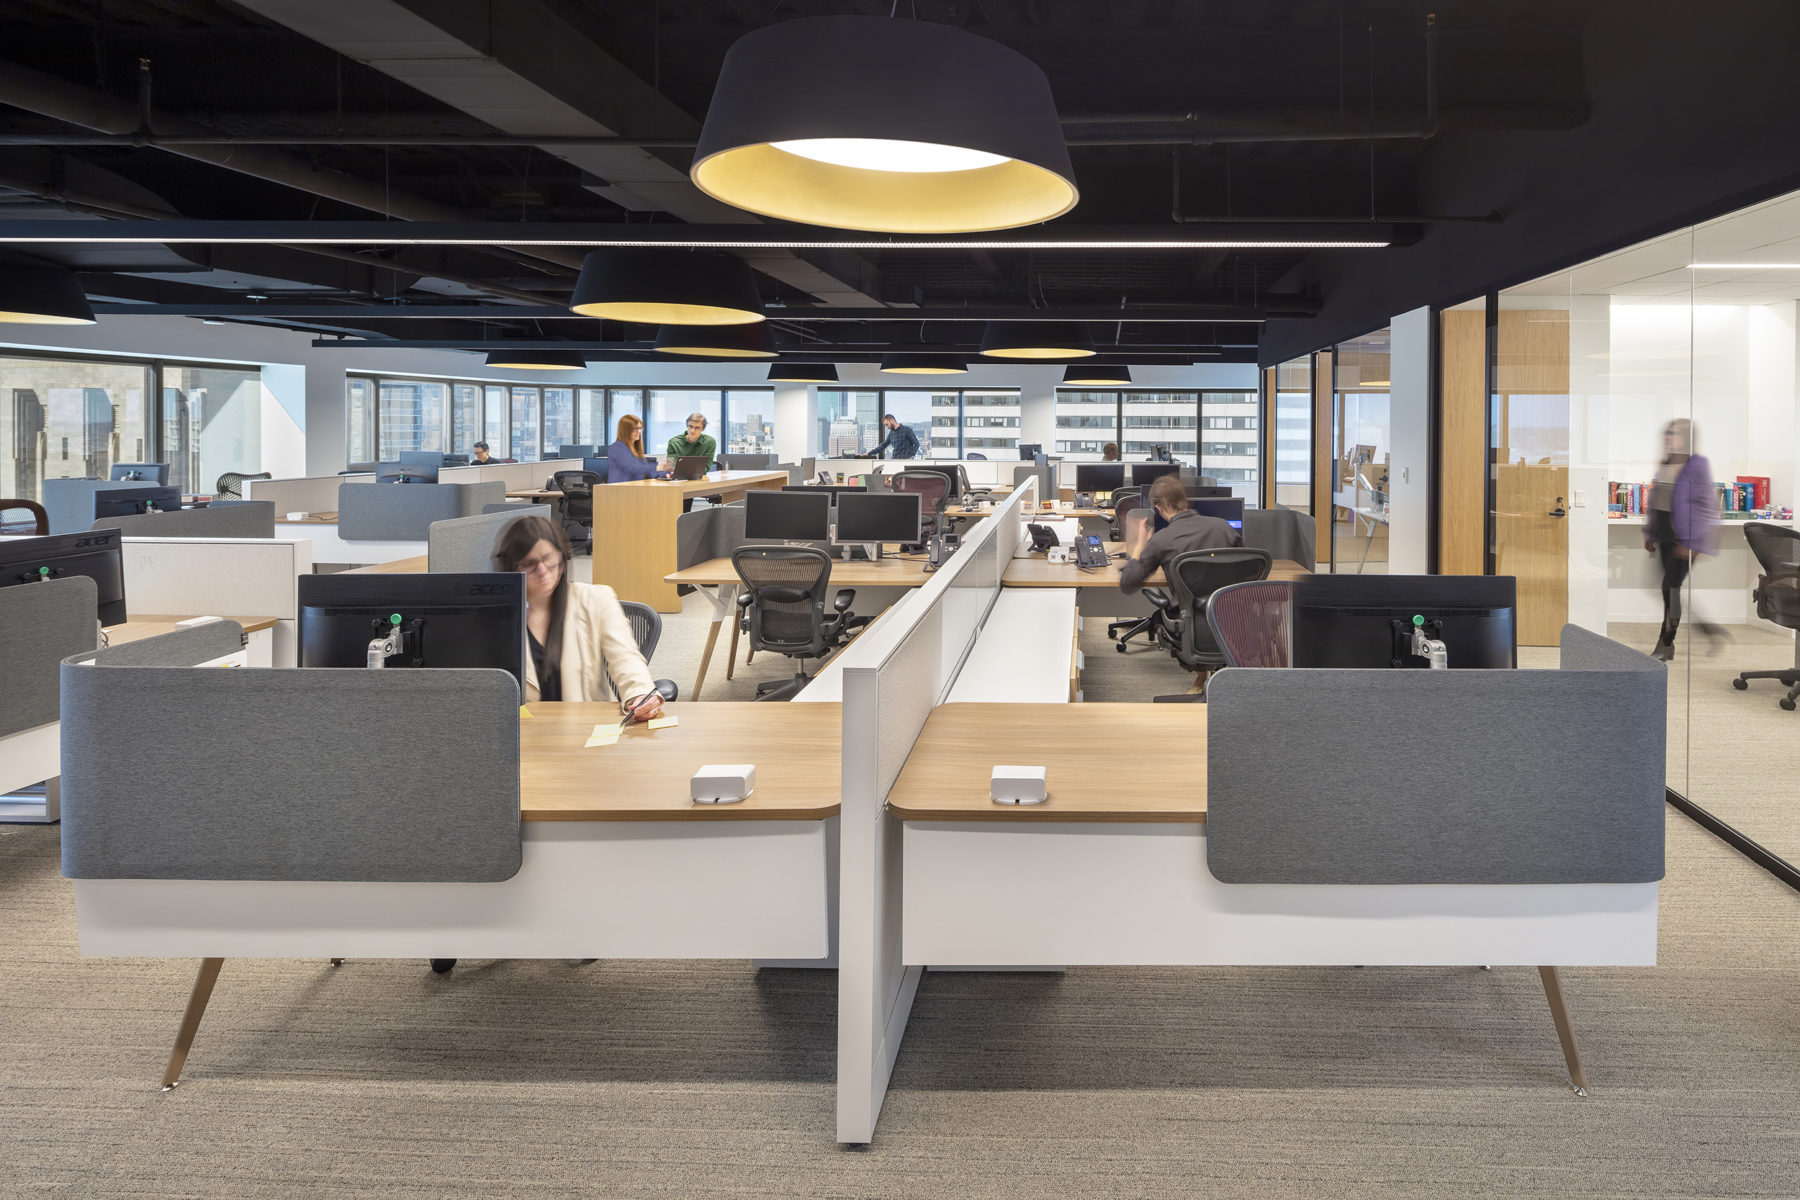 people sitting at desks in an open office